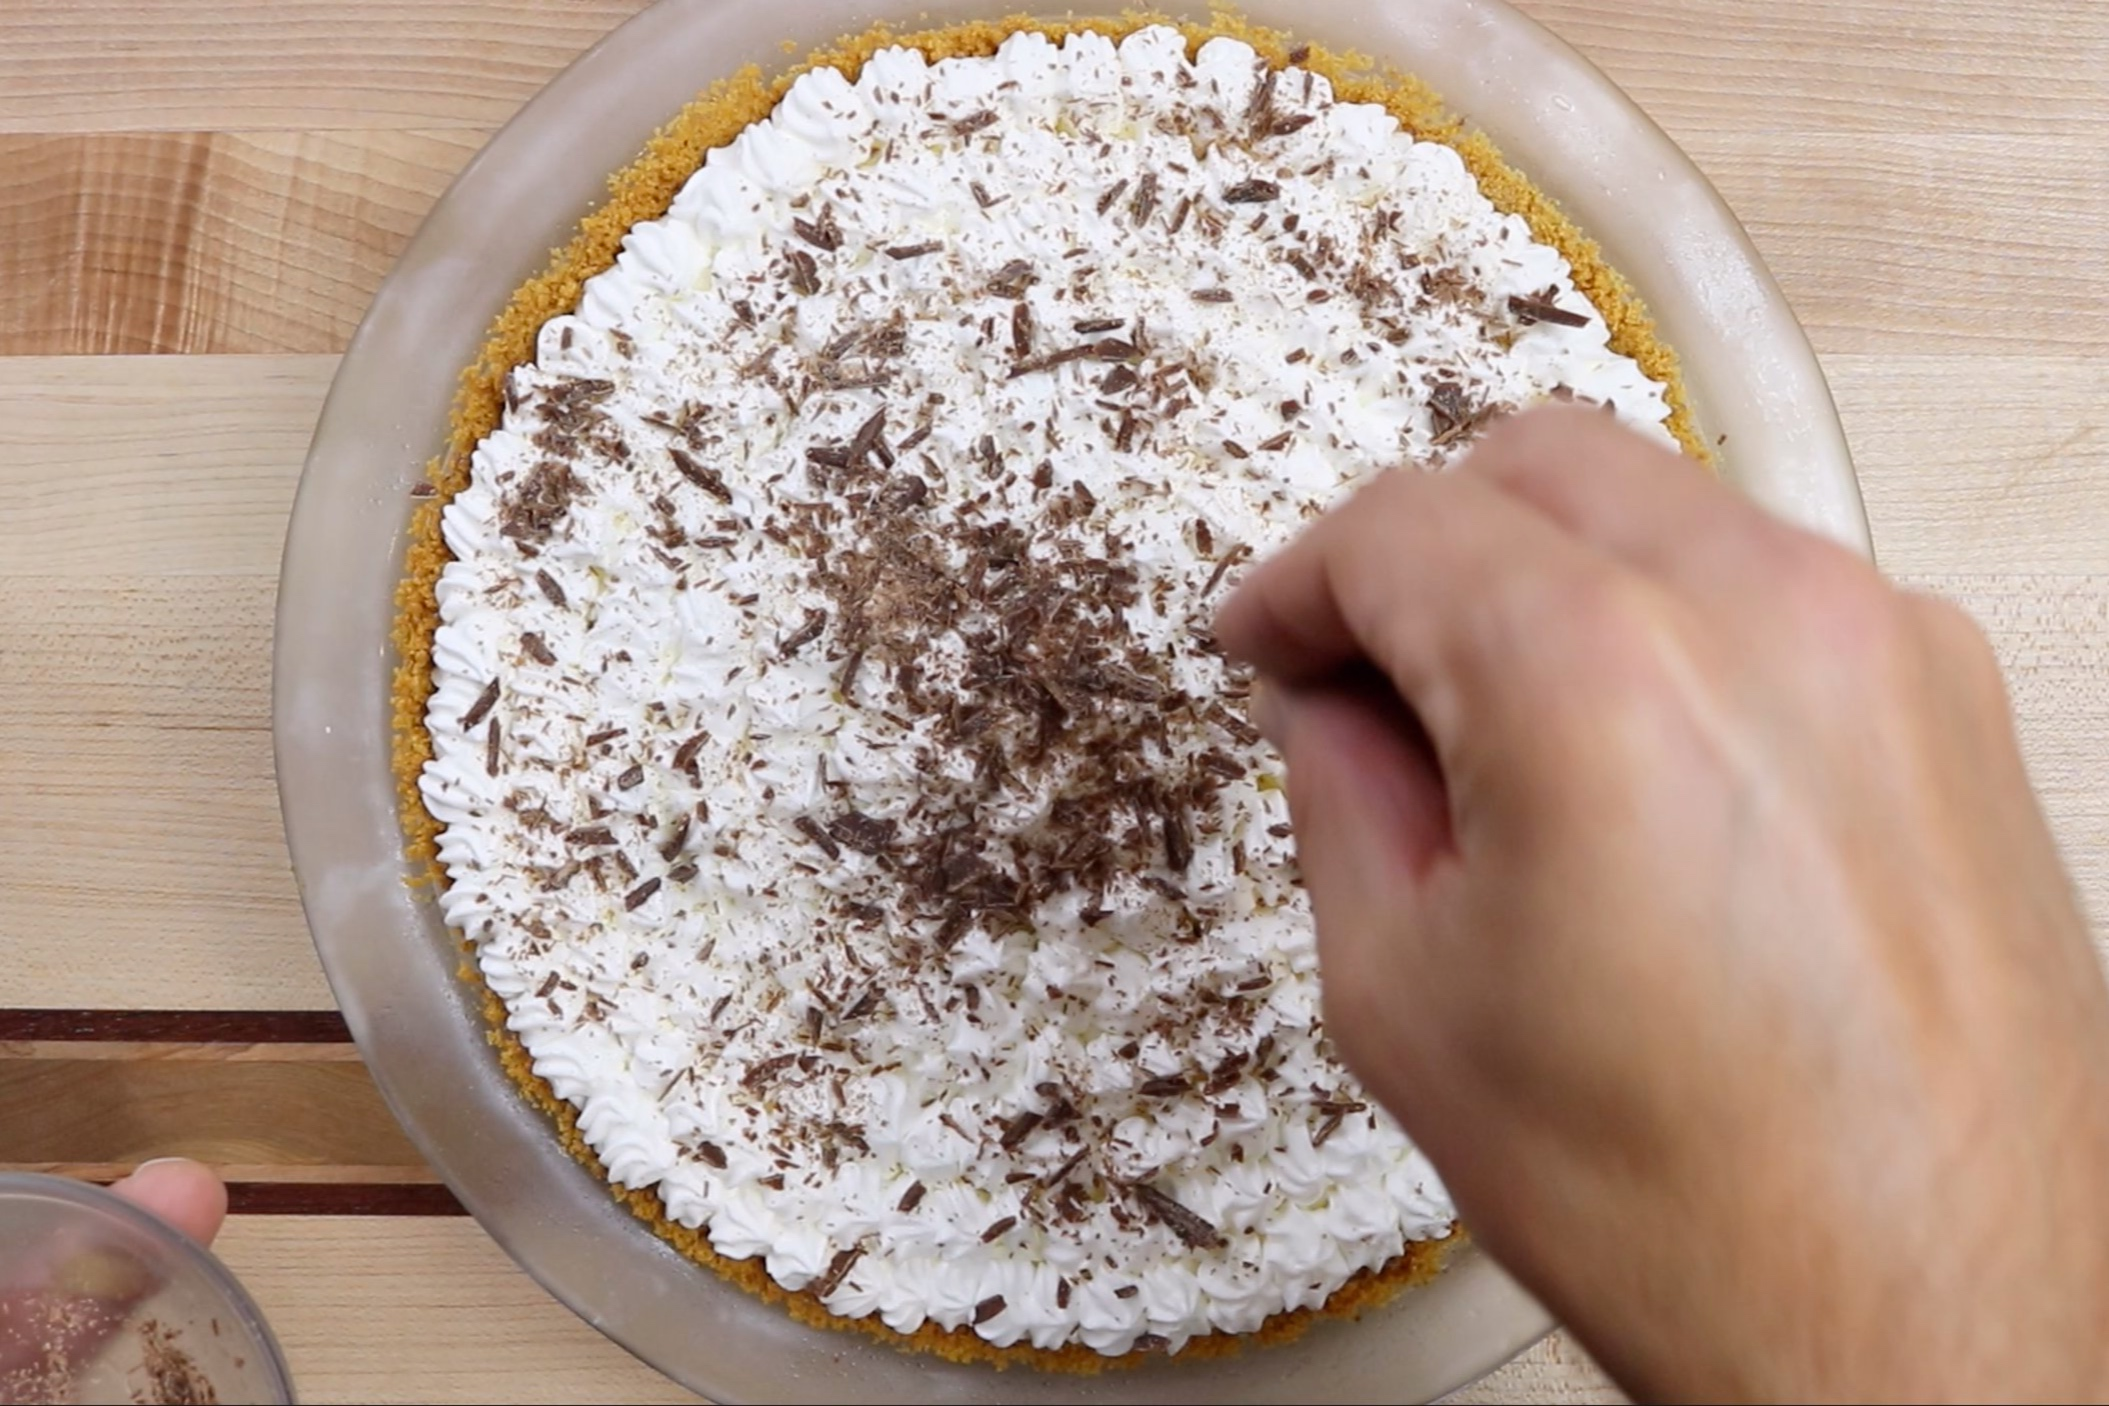 5. Sprinkle chocolate shavings on top of pie and put back in the refrigerator for at least an hour before serving. -